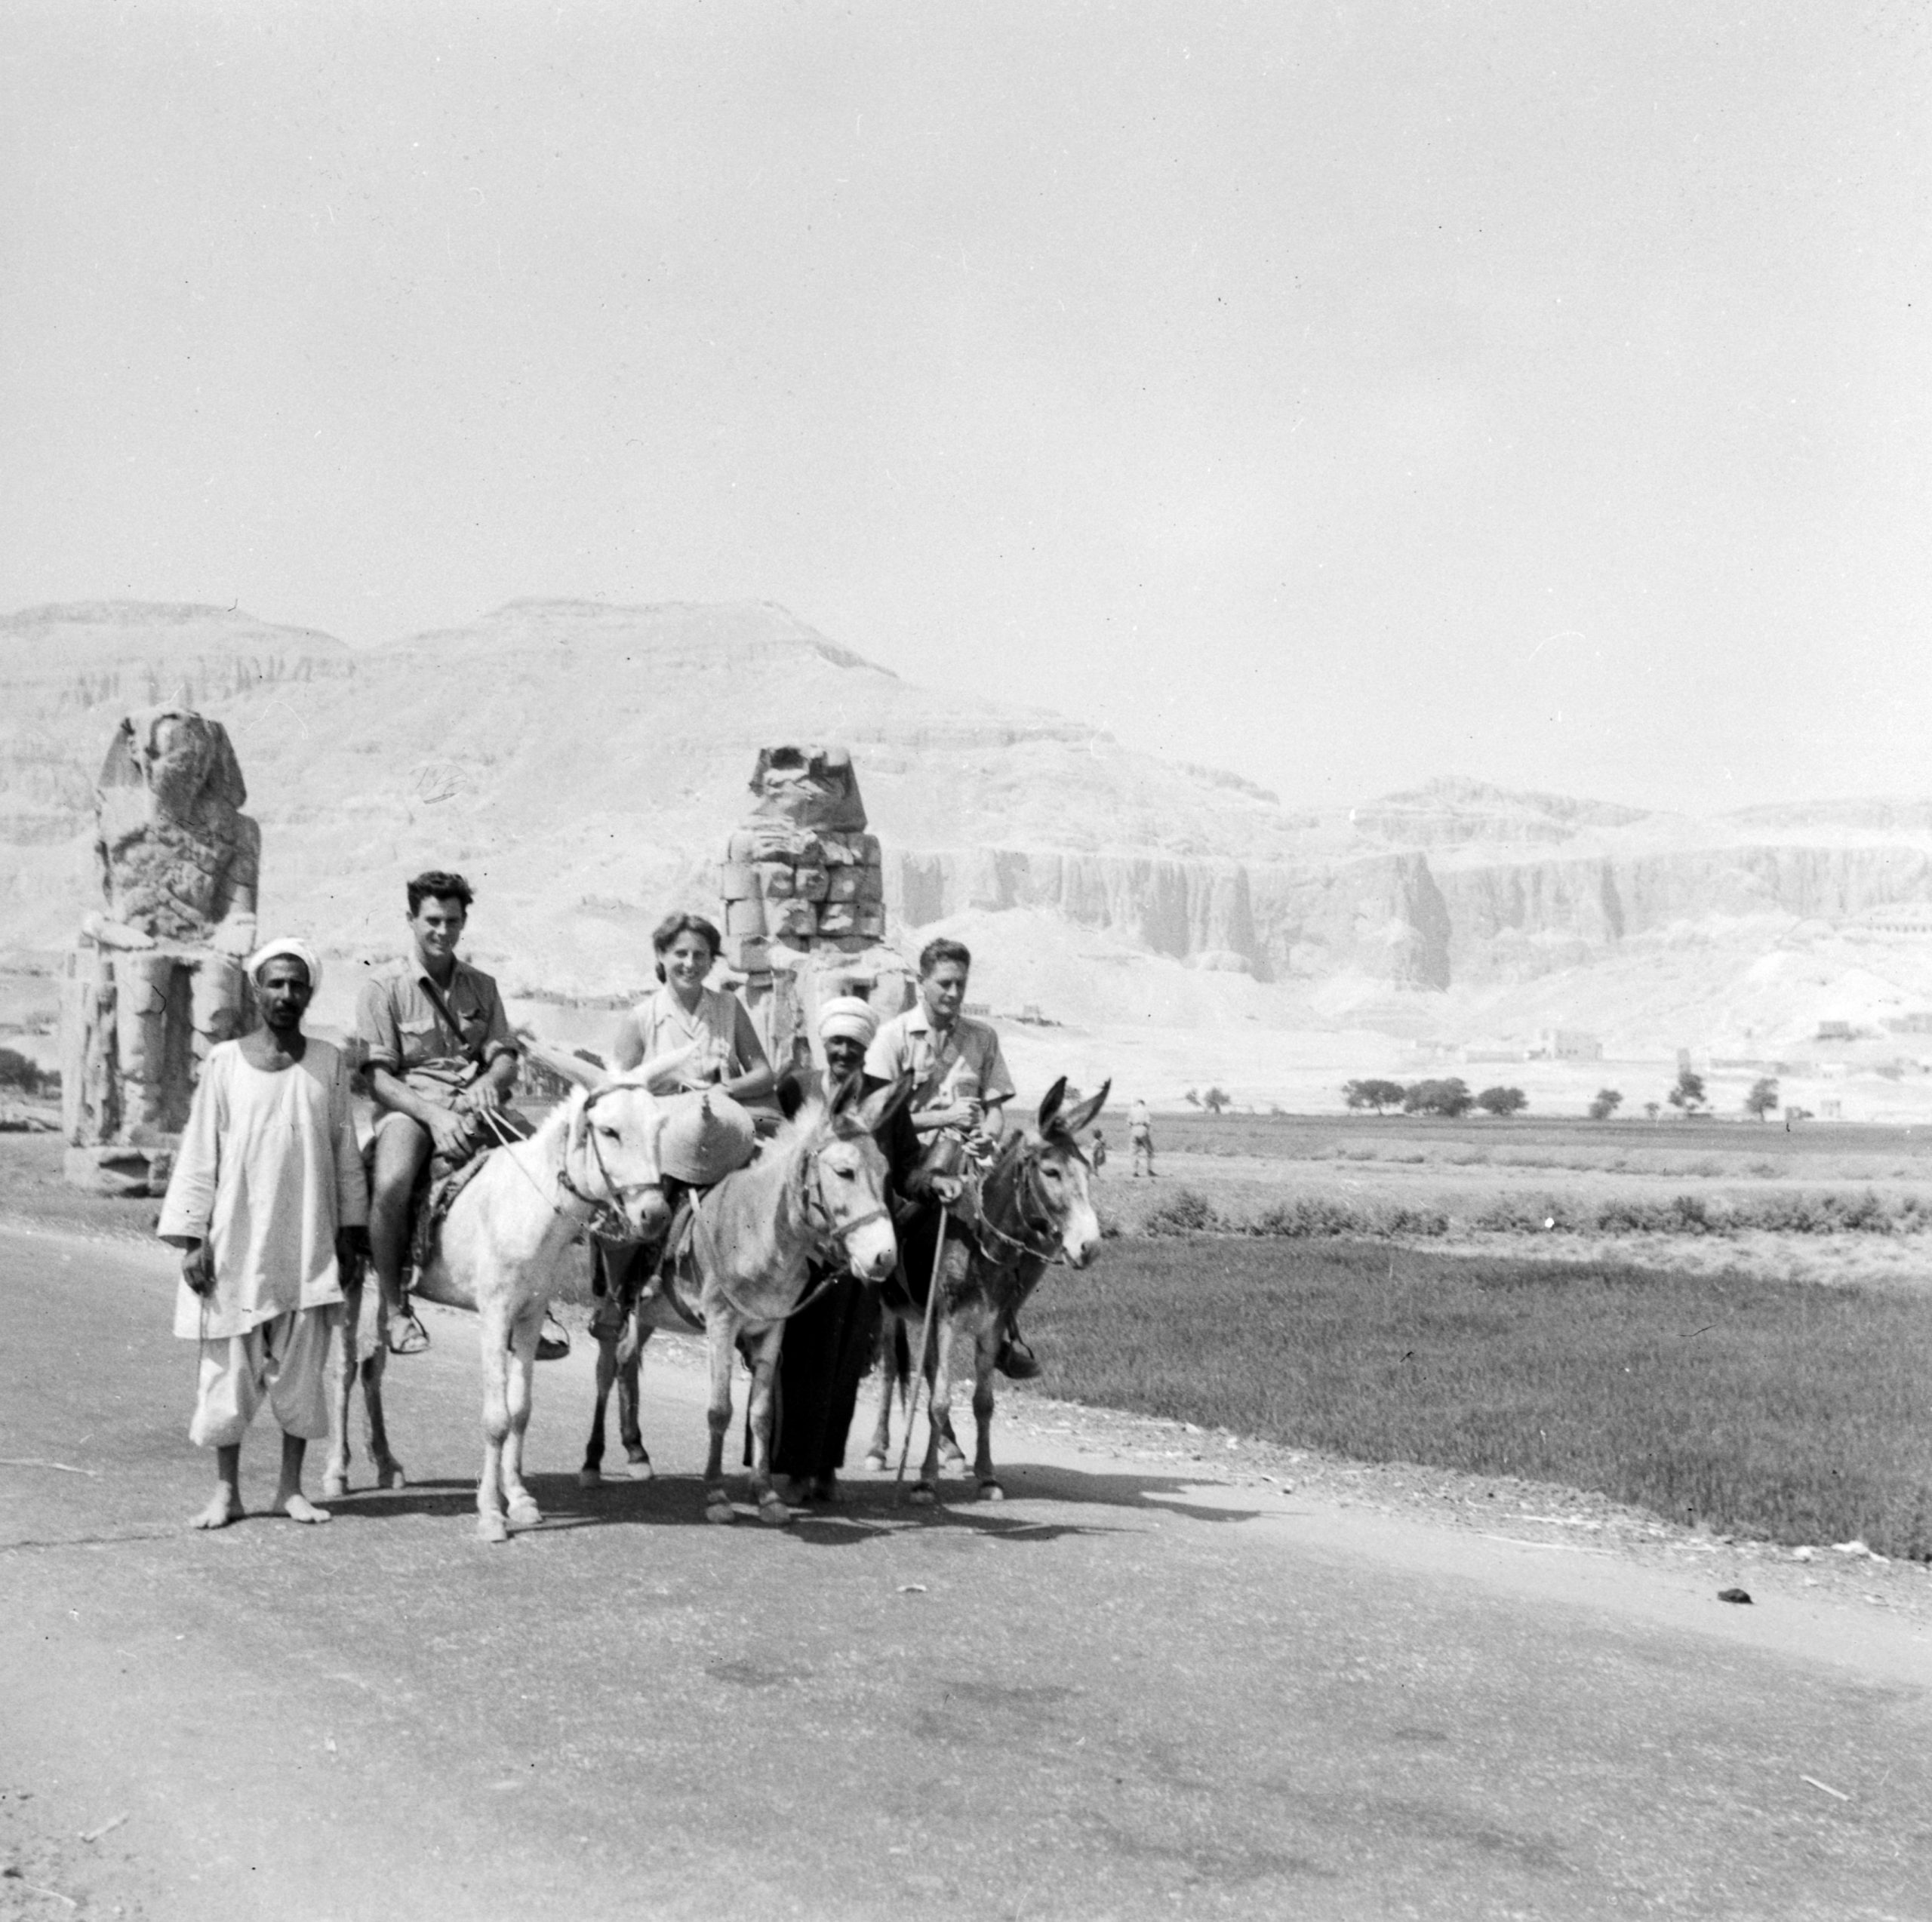 Home is a Journey - March 2 - donkey ride valley of the kings